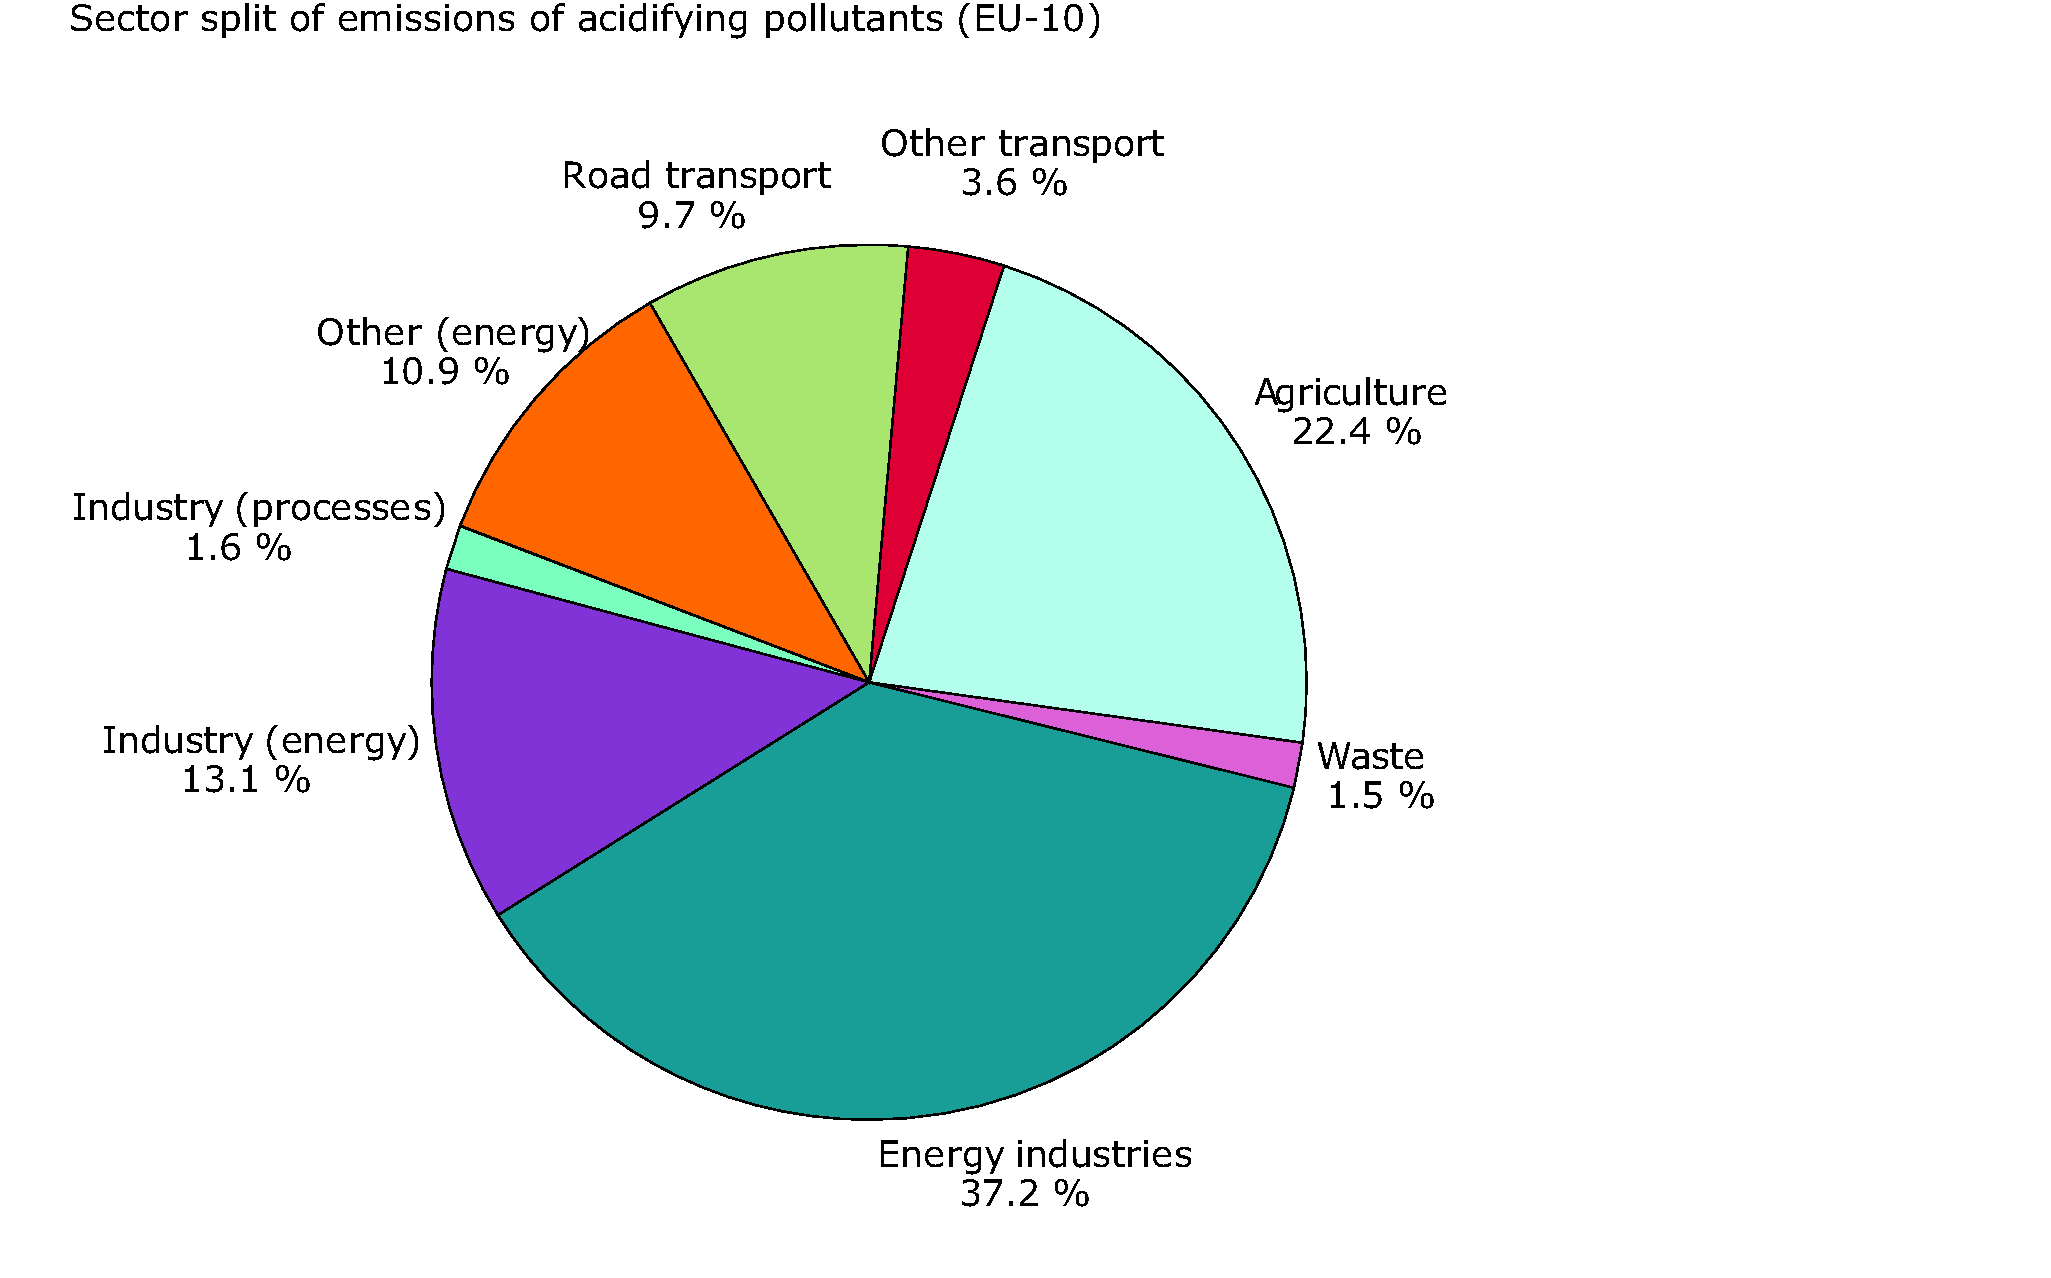 Sector split for emissions of acidifying pollutants (EU-10), 2002